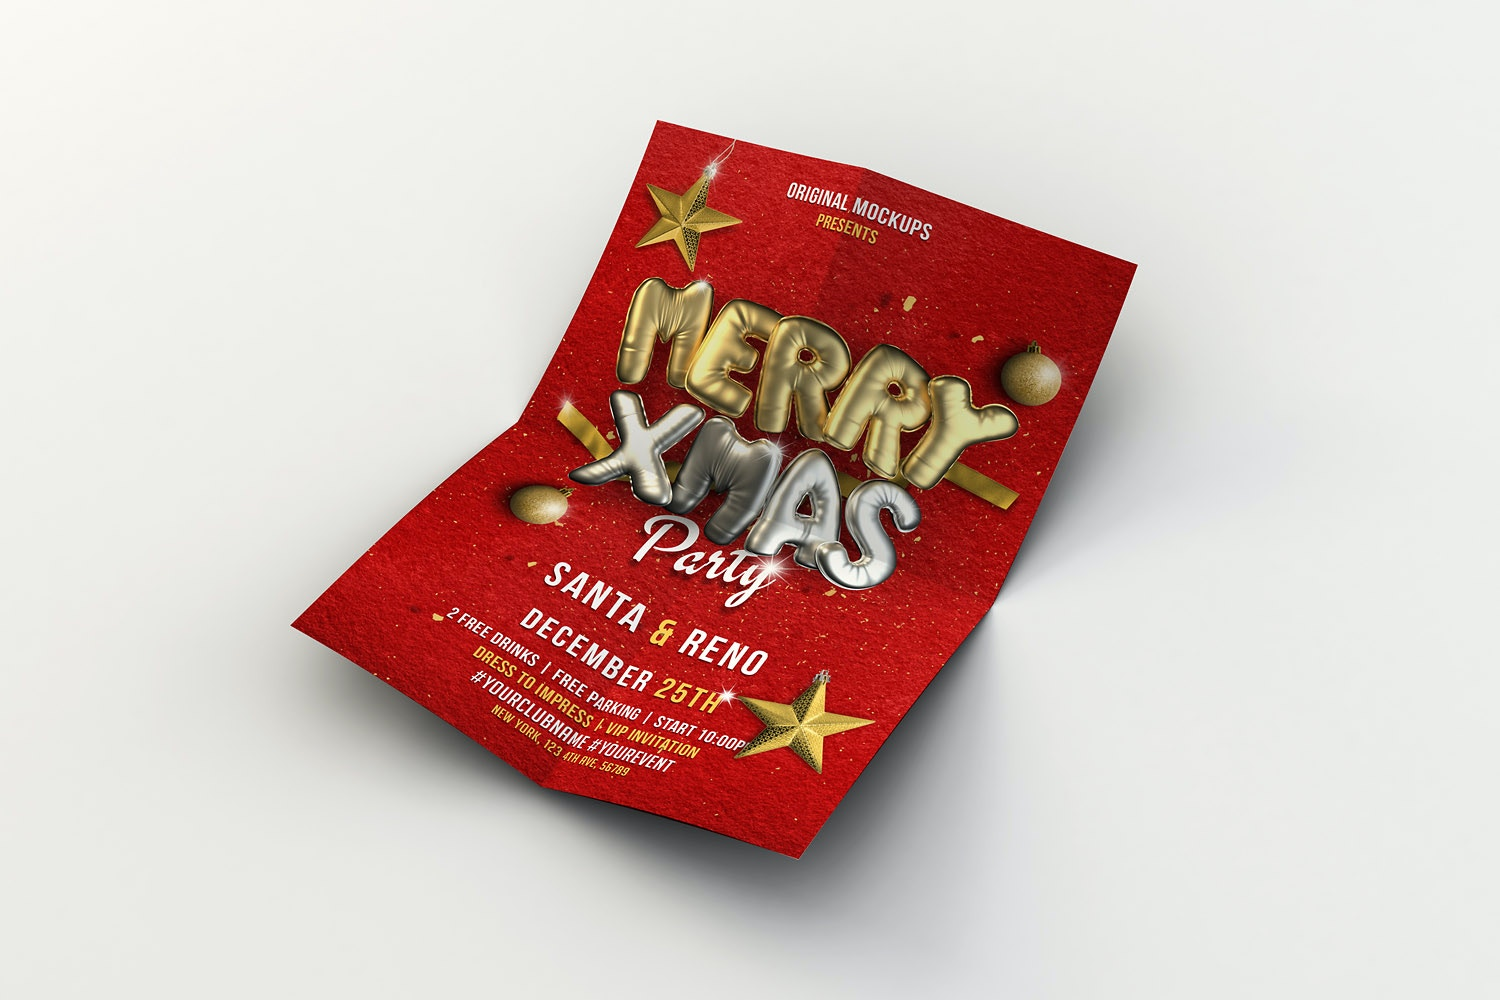 Merry Christmas Flyer - Poster 04 by Original Mockups on Original Mockups